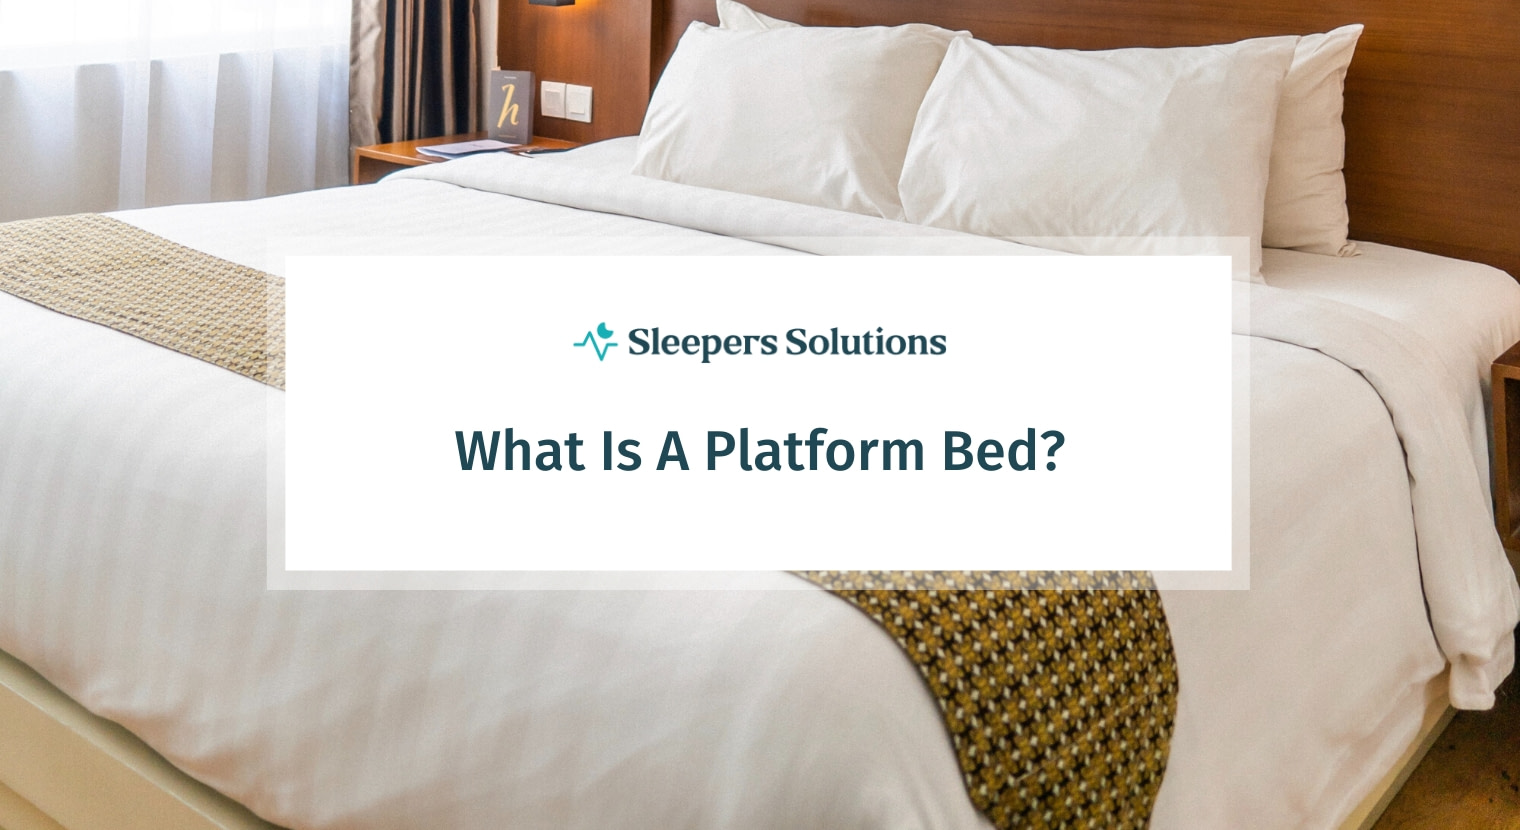 What Is A Platform Bed?